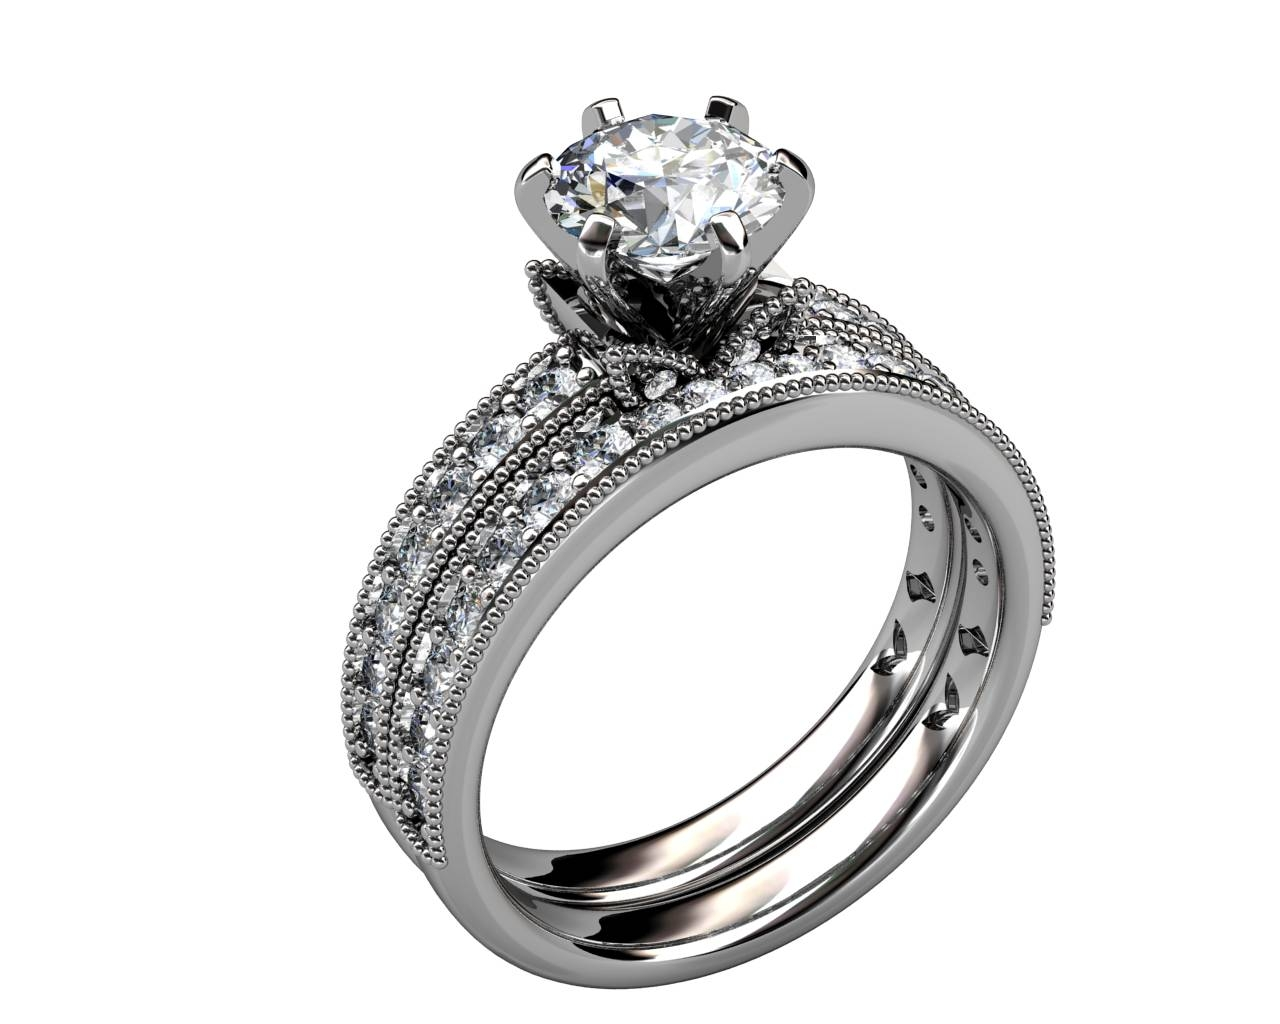 Inexpensive Diamond Rings | Wedding, Promise, Diamond, Engagement Pertaining To Pompeii Engagement Rings (View 14 of 15)